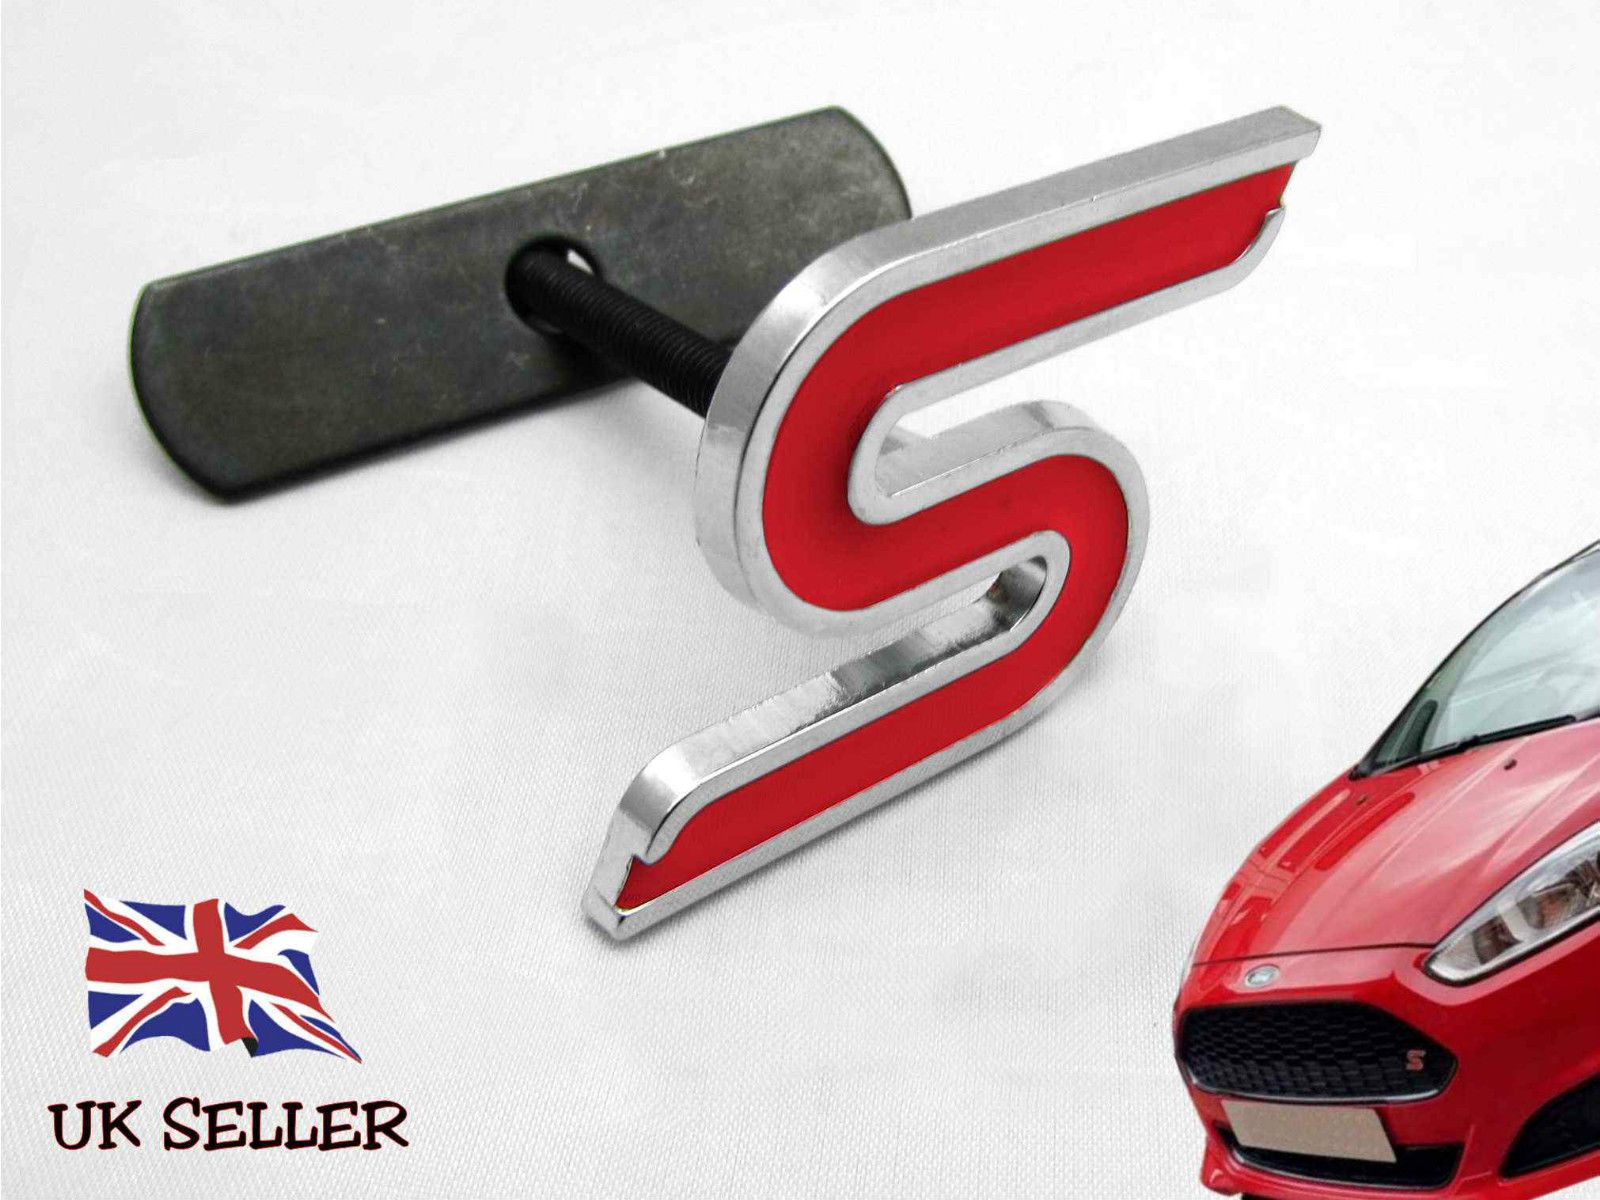 NEW BLACK ZETEC S GRILLE BADGE EMBLEM FOR FORD FIESTA FOCUS /& FITTING KIT